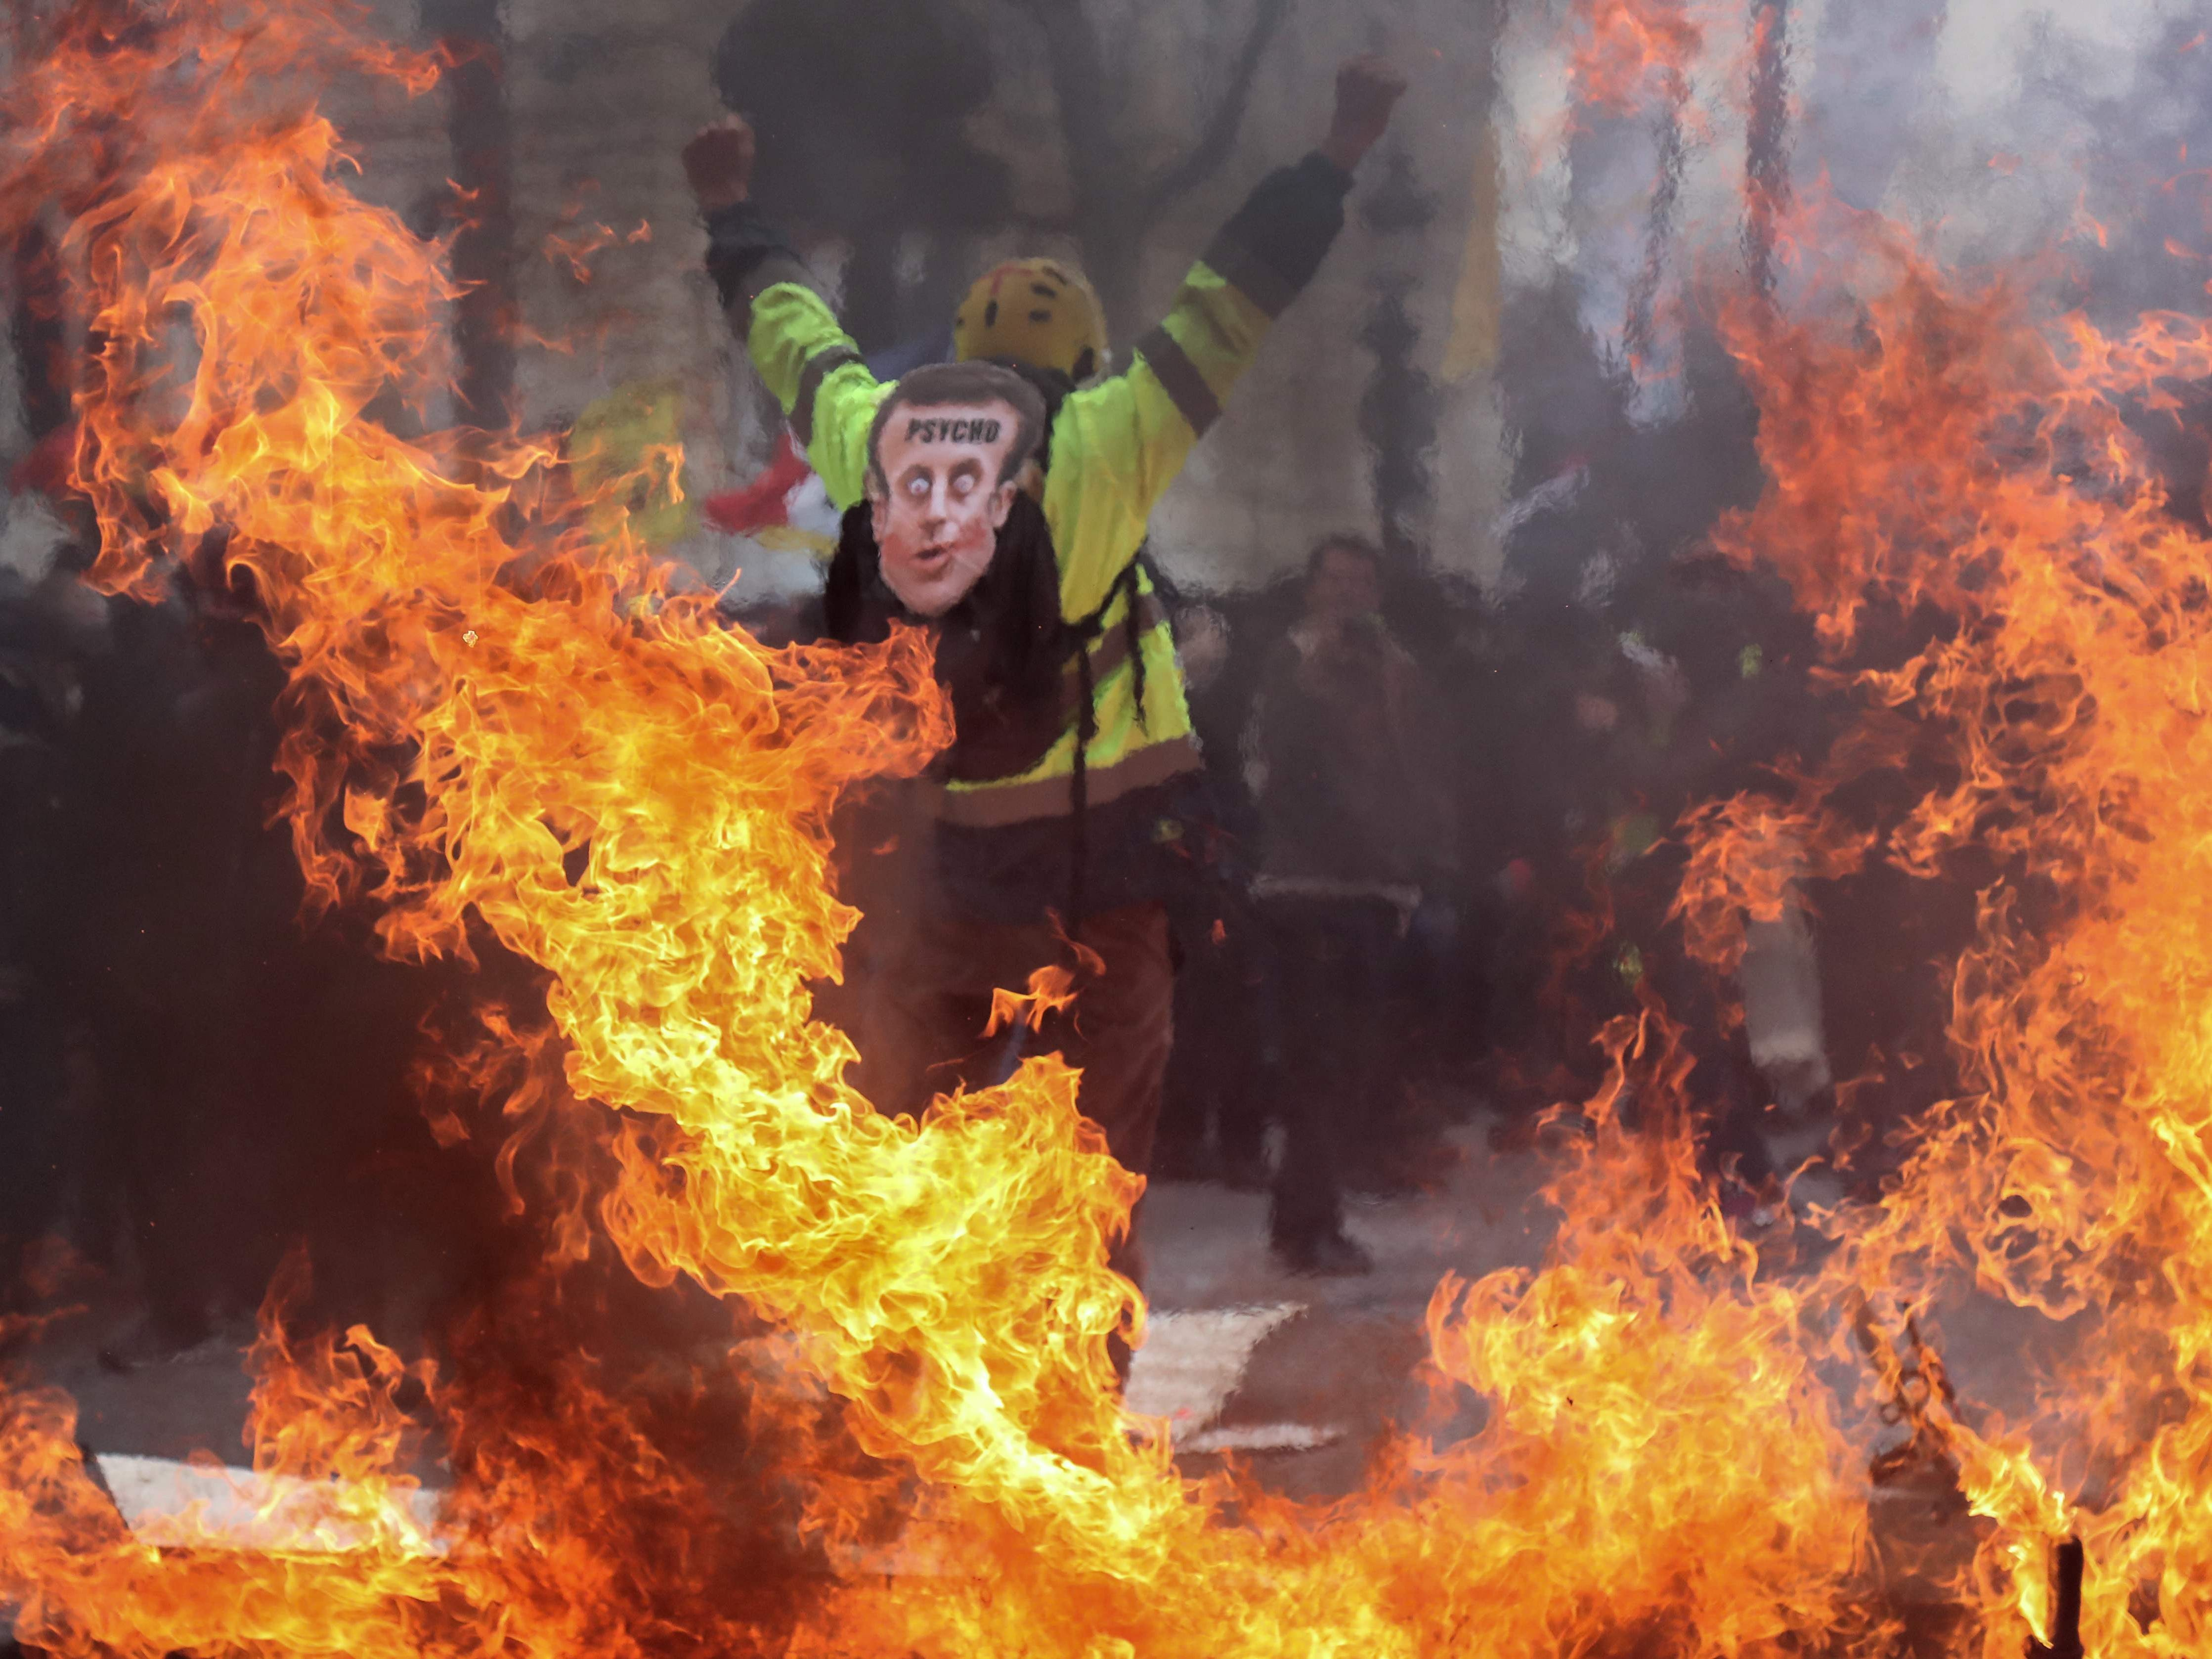 A Yellow Vest protester wearing a mask depicting the French President gestures behind flames rising from barricades, in Paris on March 16, 2019, during the 18th consecutive Saturday of demonstrations called by the 'Yellow Vest' (gilets jaunes) movement.